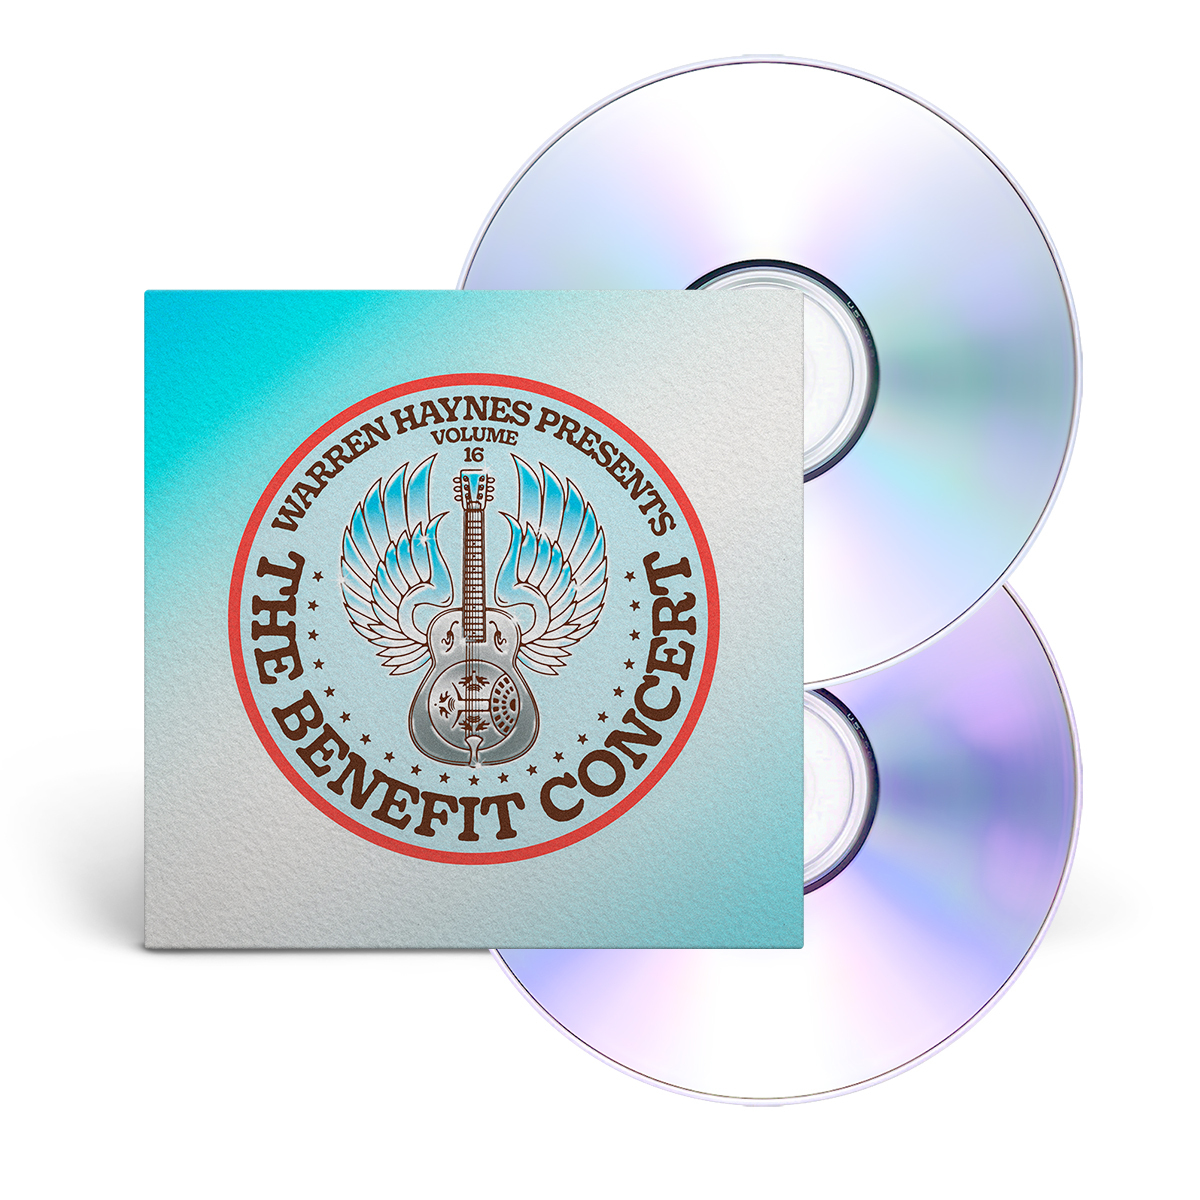 Warren Haynes Presents: The Benefit Concert V. 16 CD/DVD